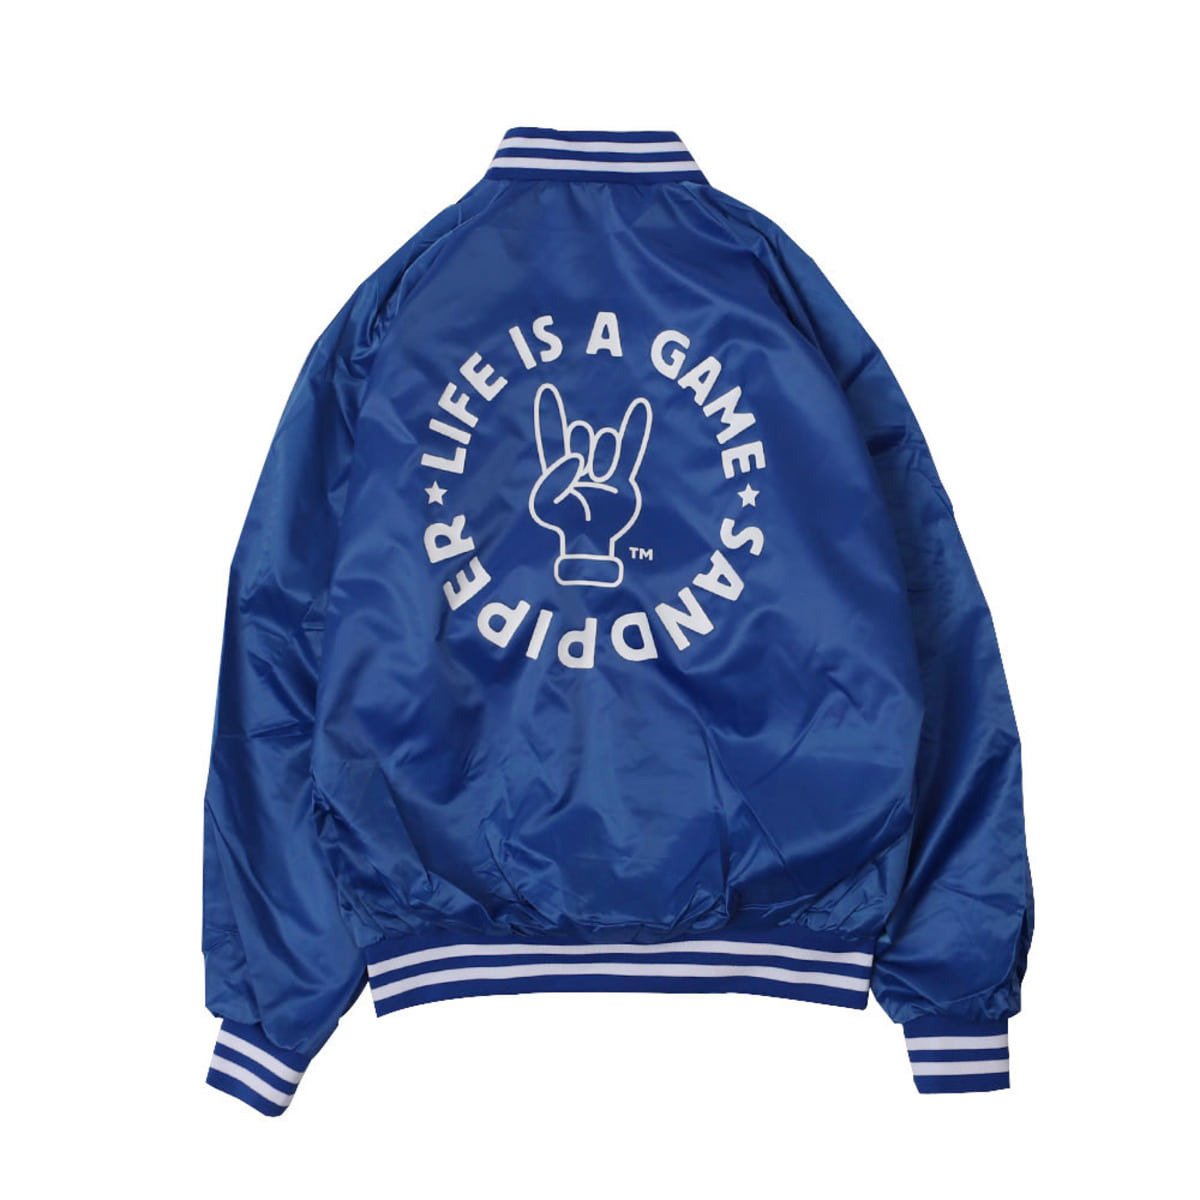 LIFE IS A GAME BASEBALL JACKET (Blue CARDINAL ACTIVE WEAR)